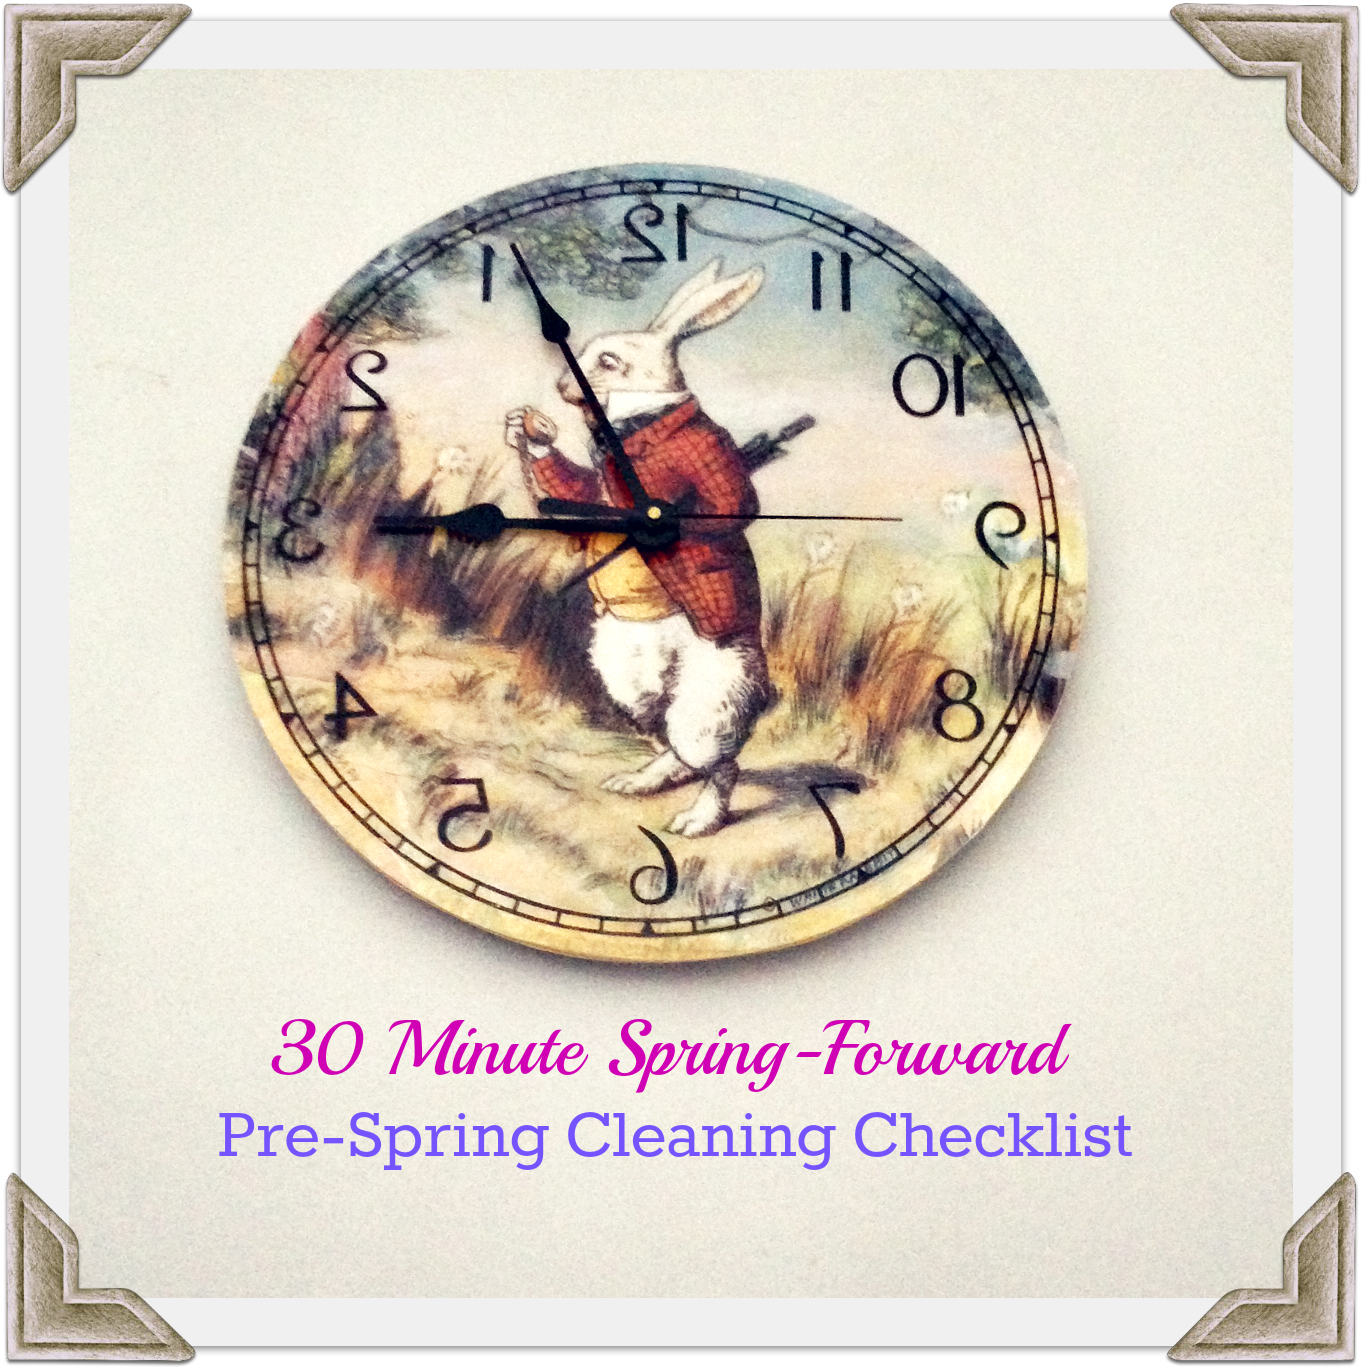 30 Minute Spring Forward Pre Spring Cleaning Checklist.png 30 Minute Spring Forward Pre Spring Cleaning Checklist